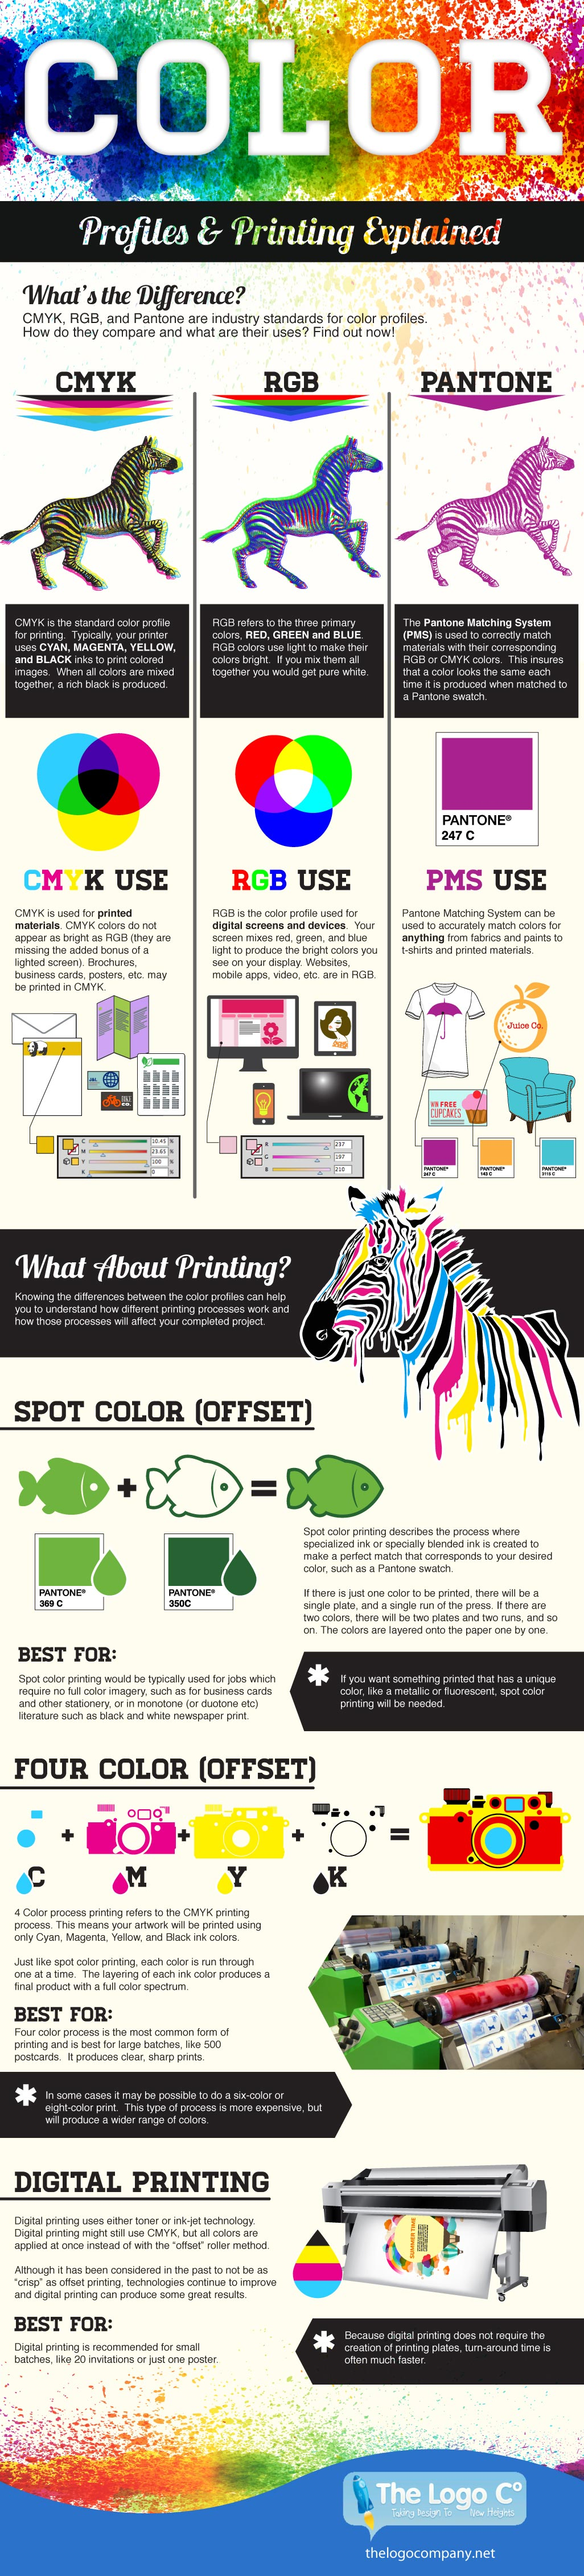 Color Profiles & Printing Explained